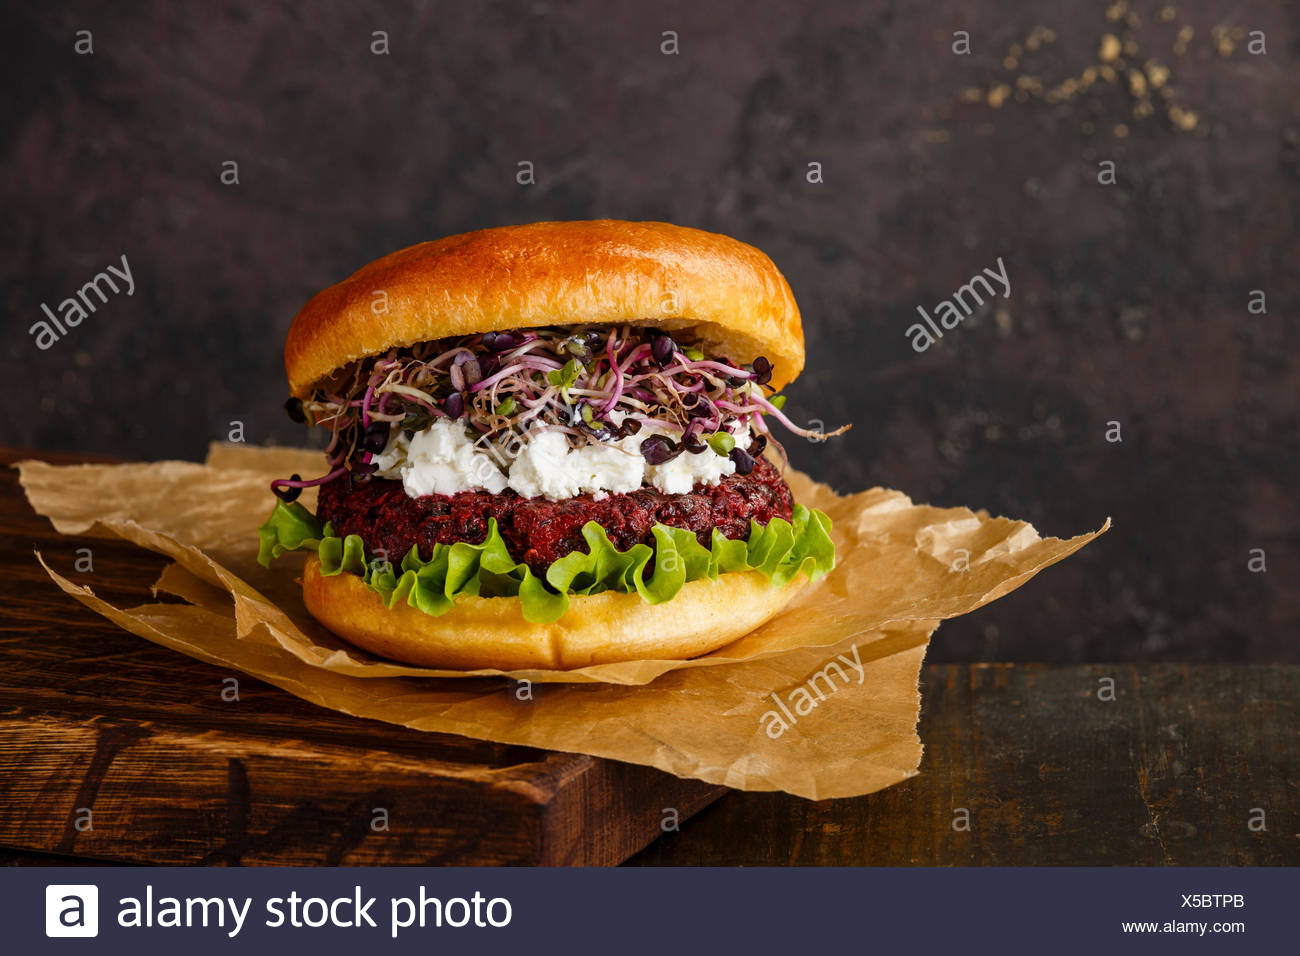 Beet burger with soft cheese and radish sprouts on dark background - Stock Image